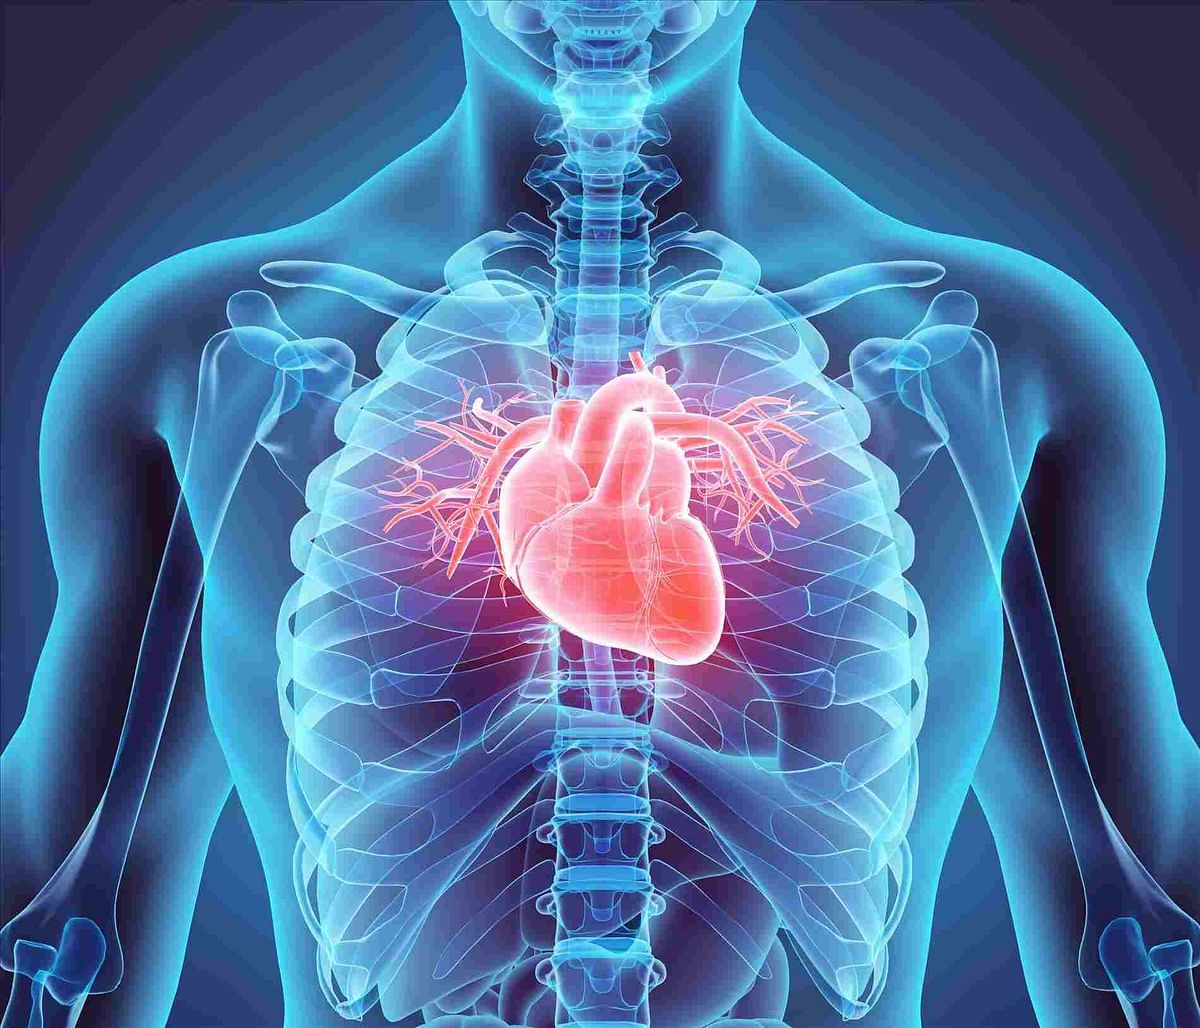 Taller people face increased risk of irregular heartbeats